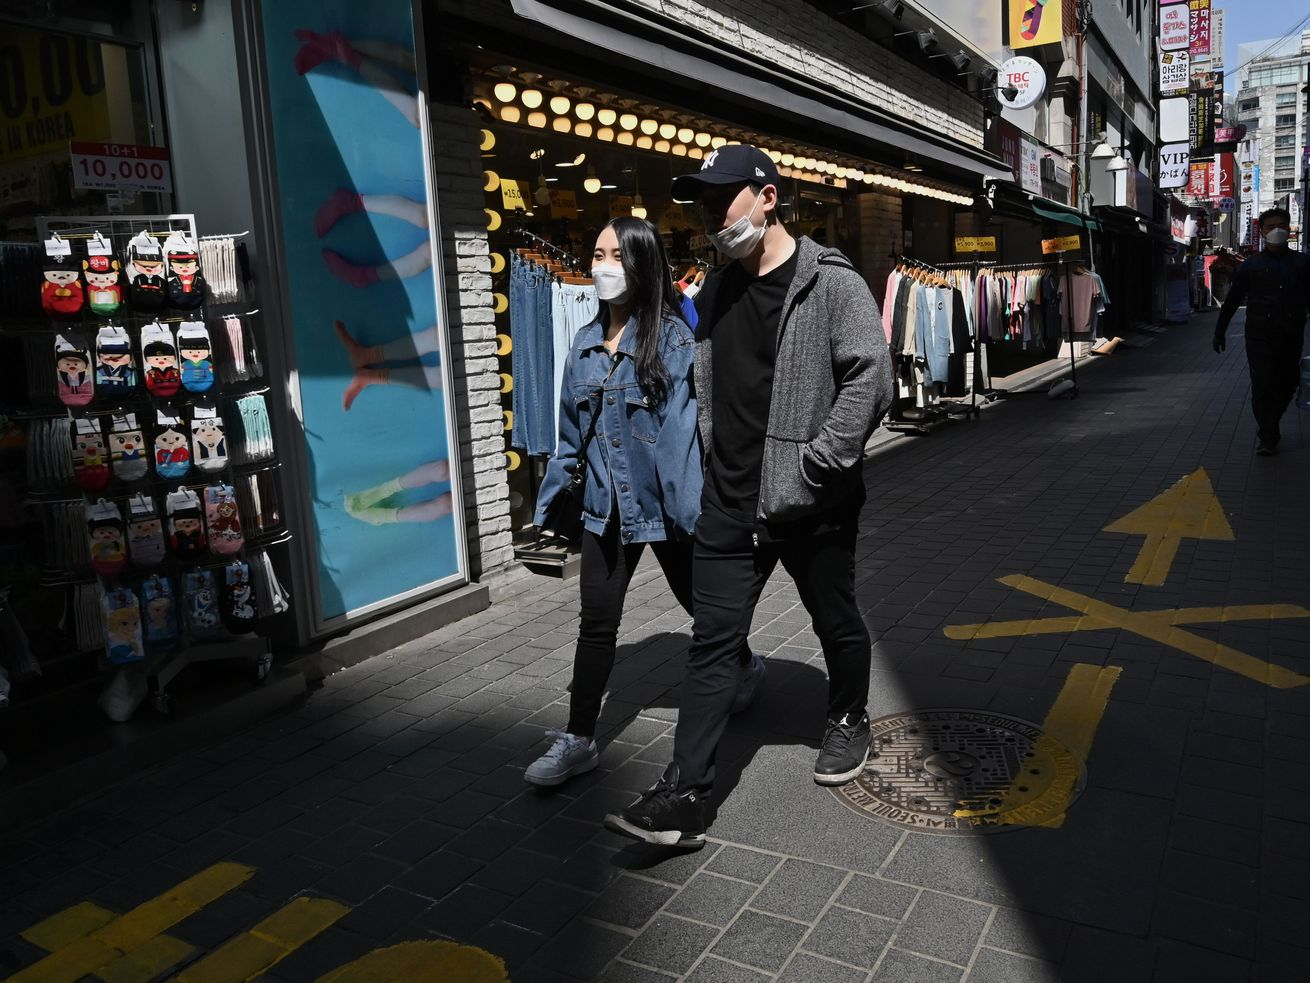 A woman and man hold hands while wearing face masks; they walk out of a shadowed area and into the sunlight.